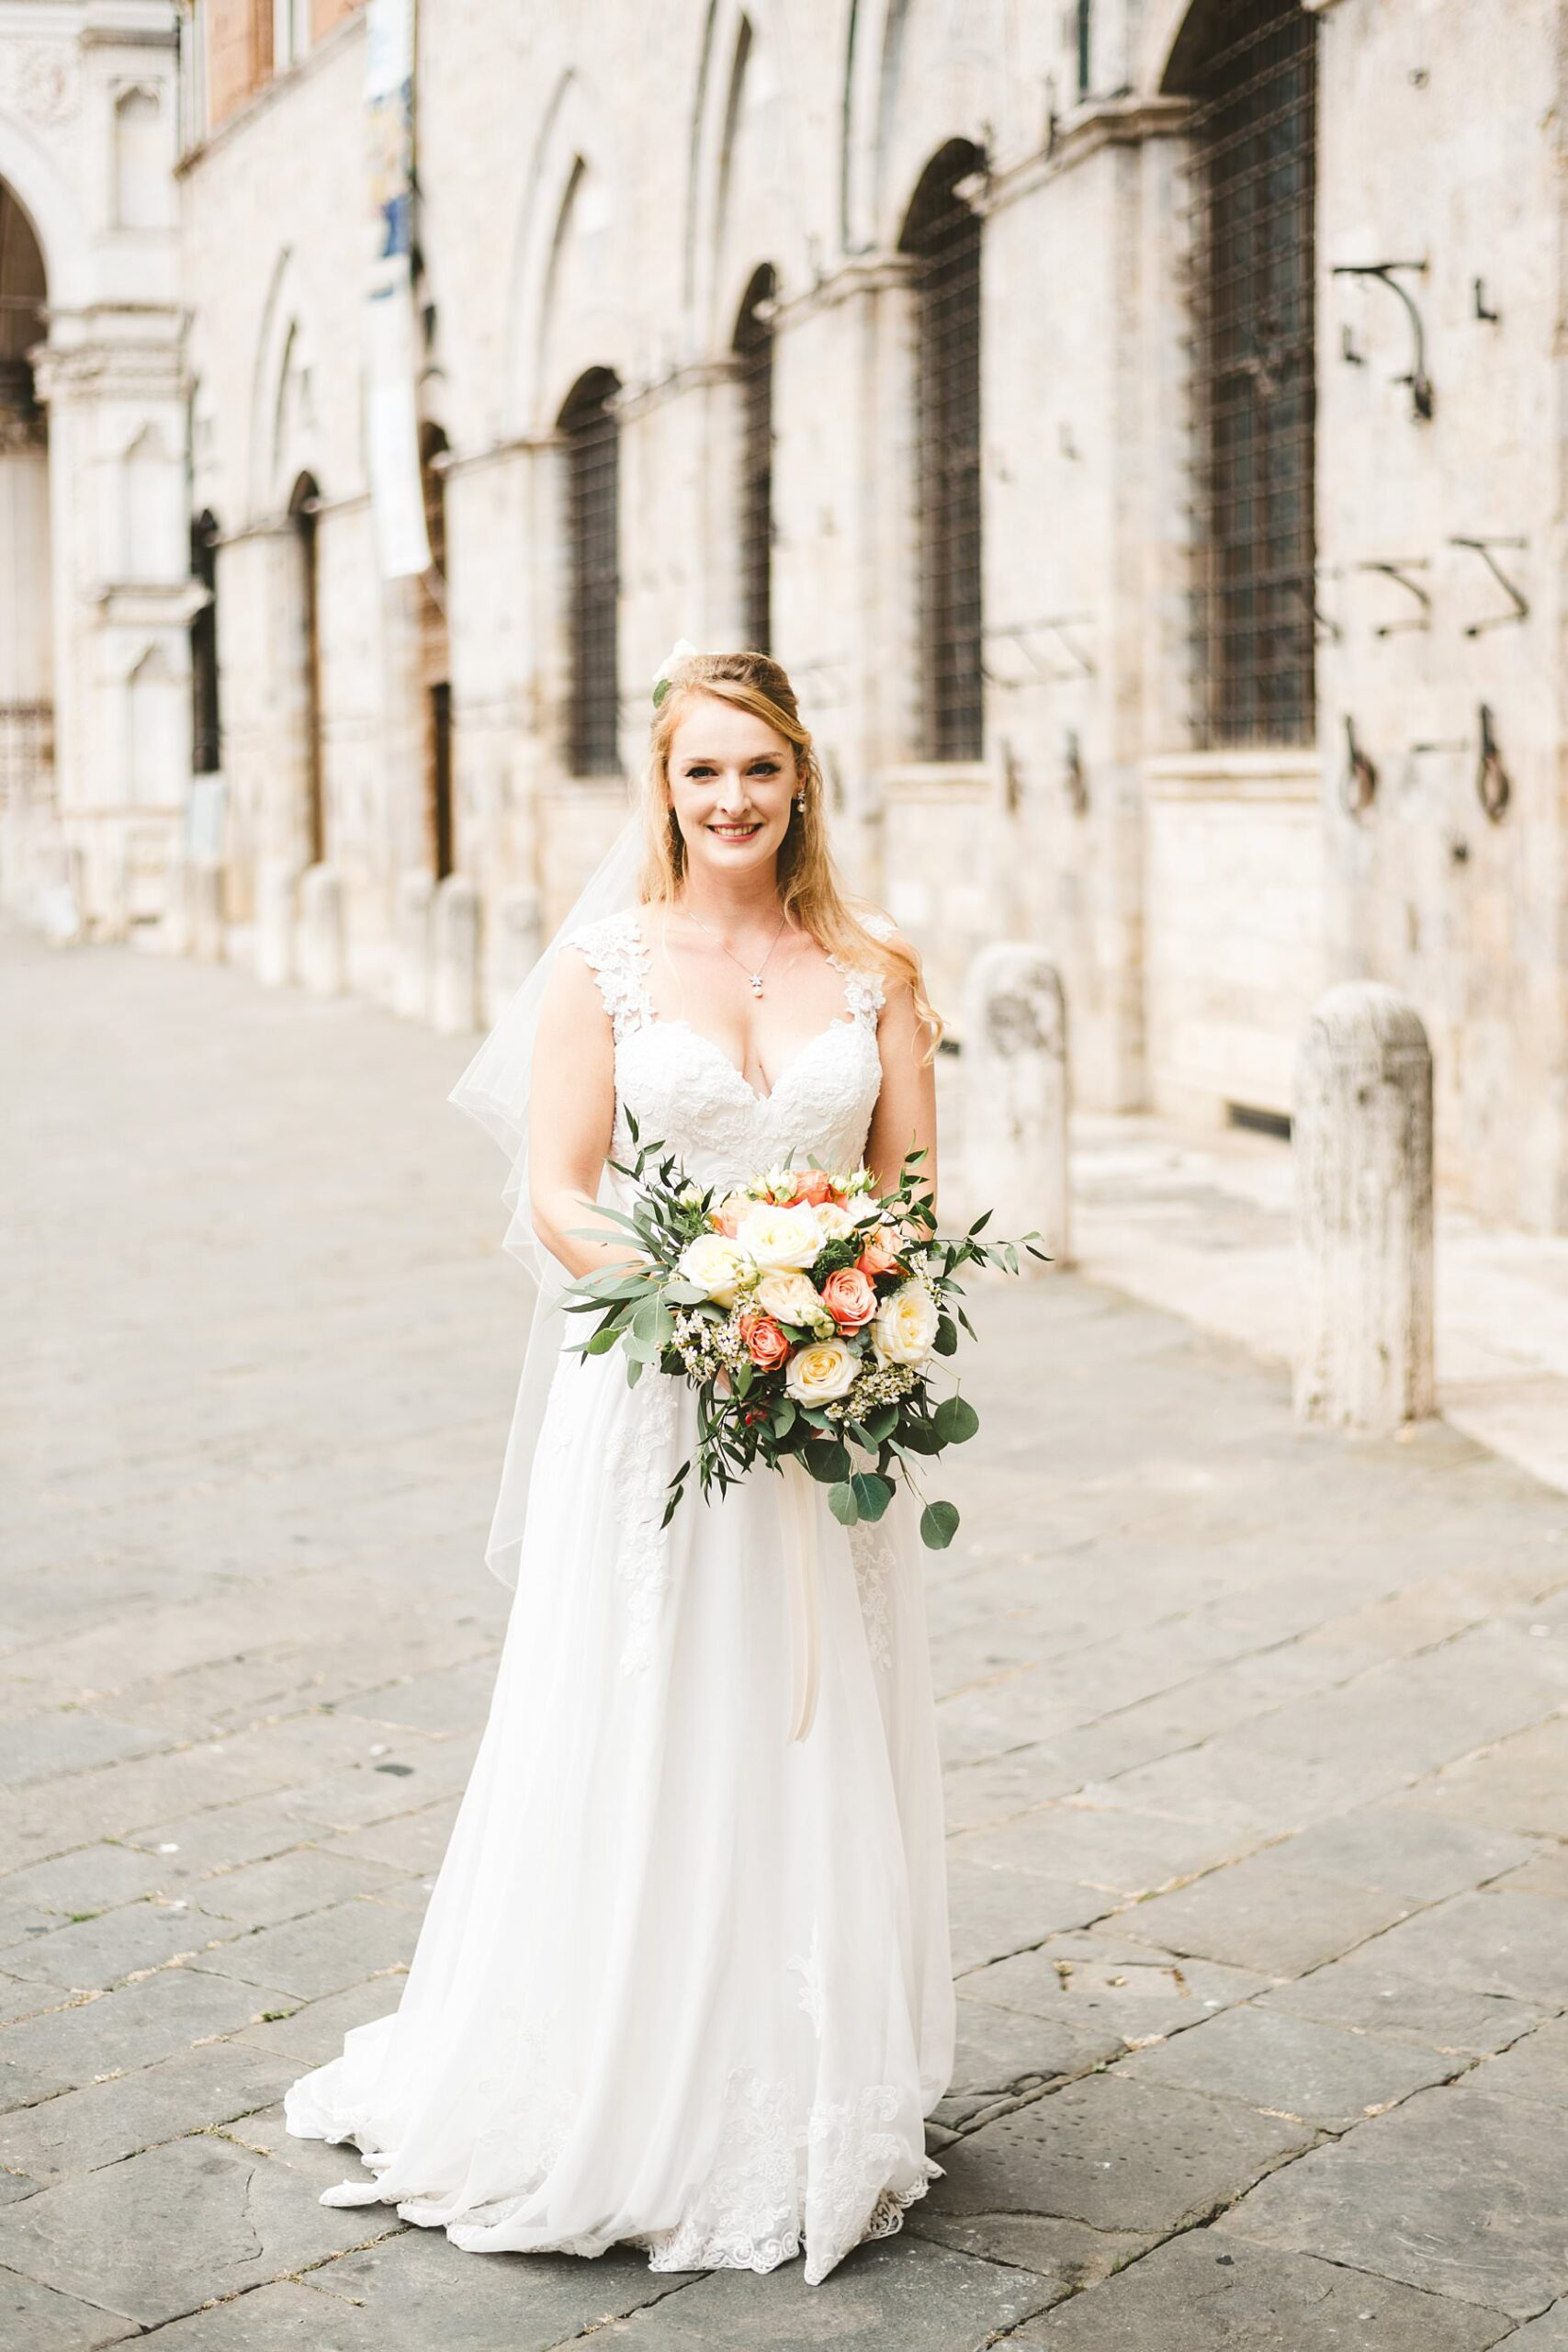 Beautiful bride Poppy from Uk almost ready to walks down the aisle in the Concistoro room in Siena Town hall